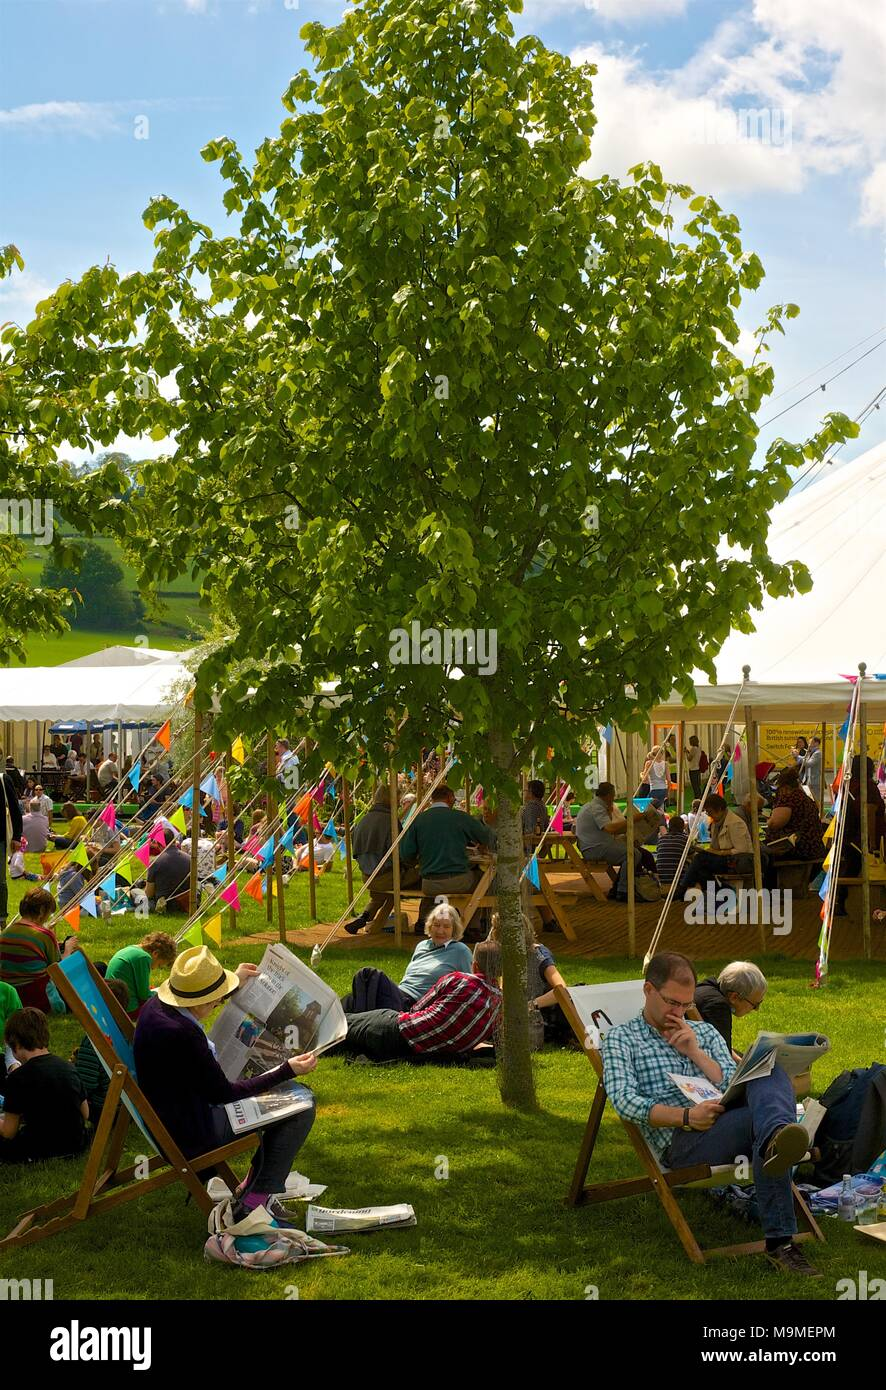 Hay on Wye book festival with people attending Festival events and book signings on a sunny summer day in Wales - Stock Image